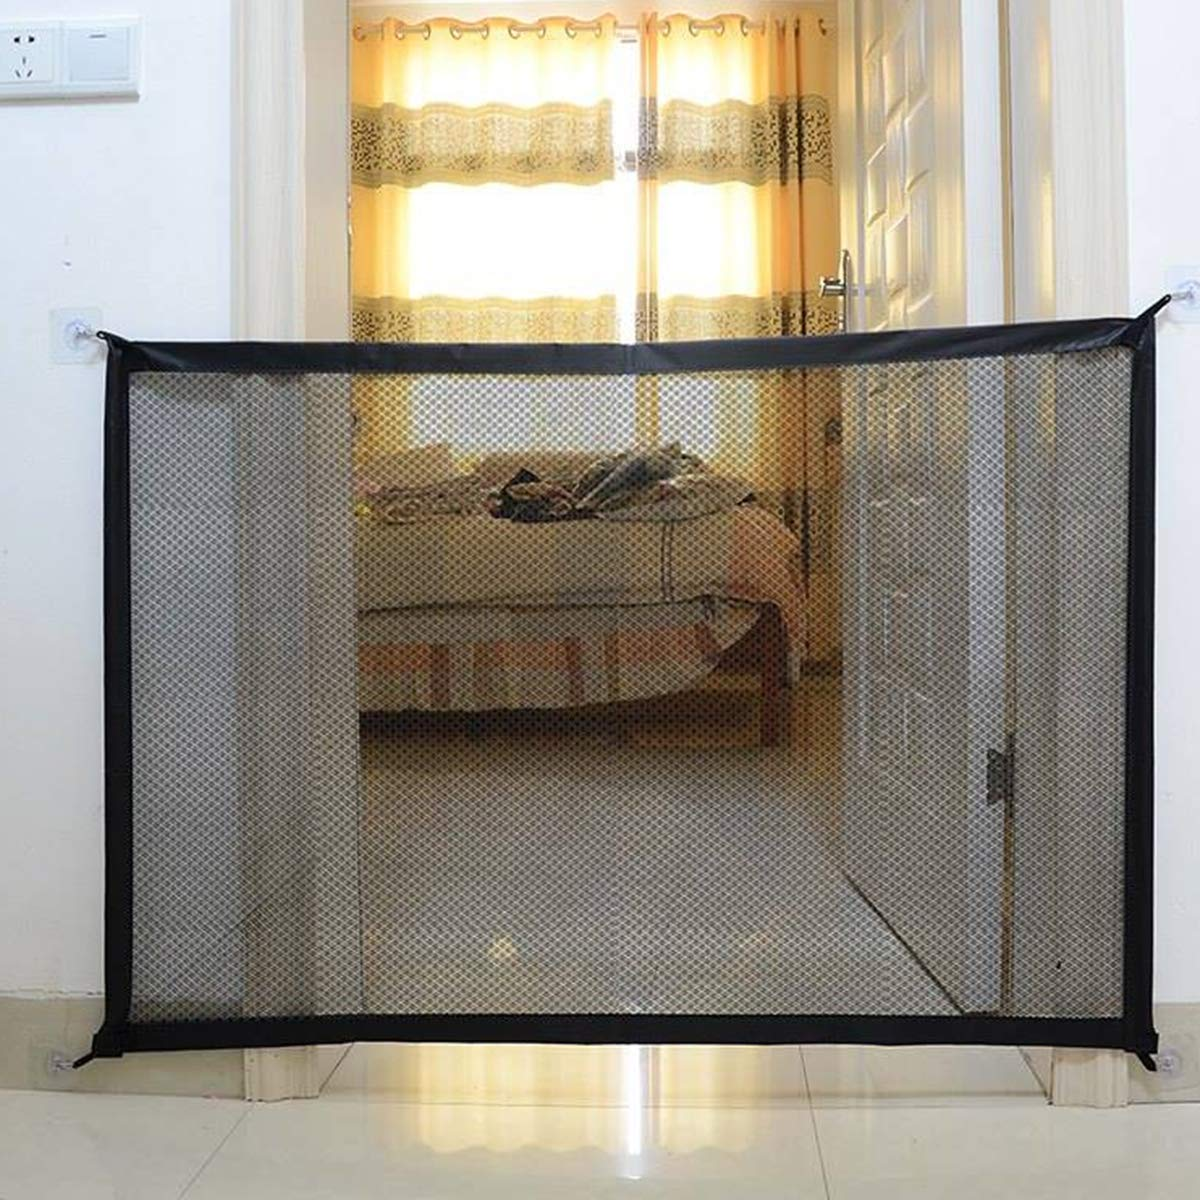 100 * 75cm POPETPOP Dog Safety Fence Separation Net Magic Gate Guard Mesh Safety Enclosure Fence Net for Pet